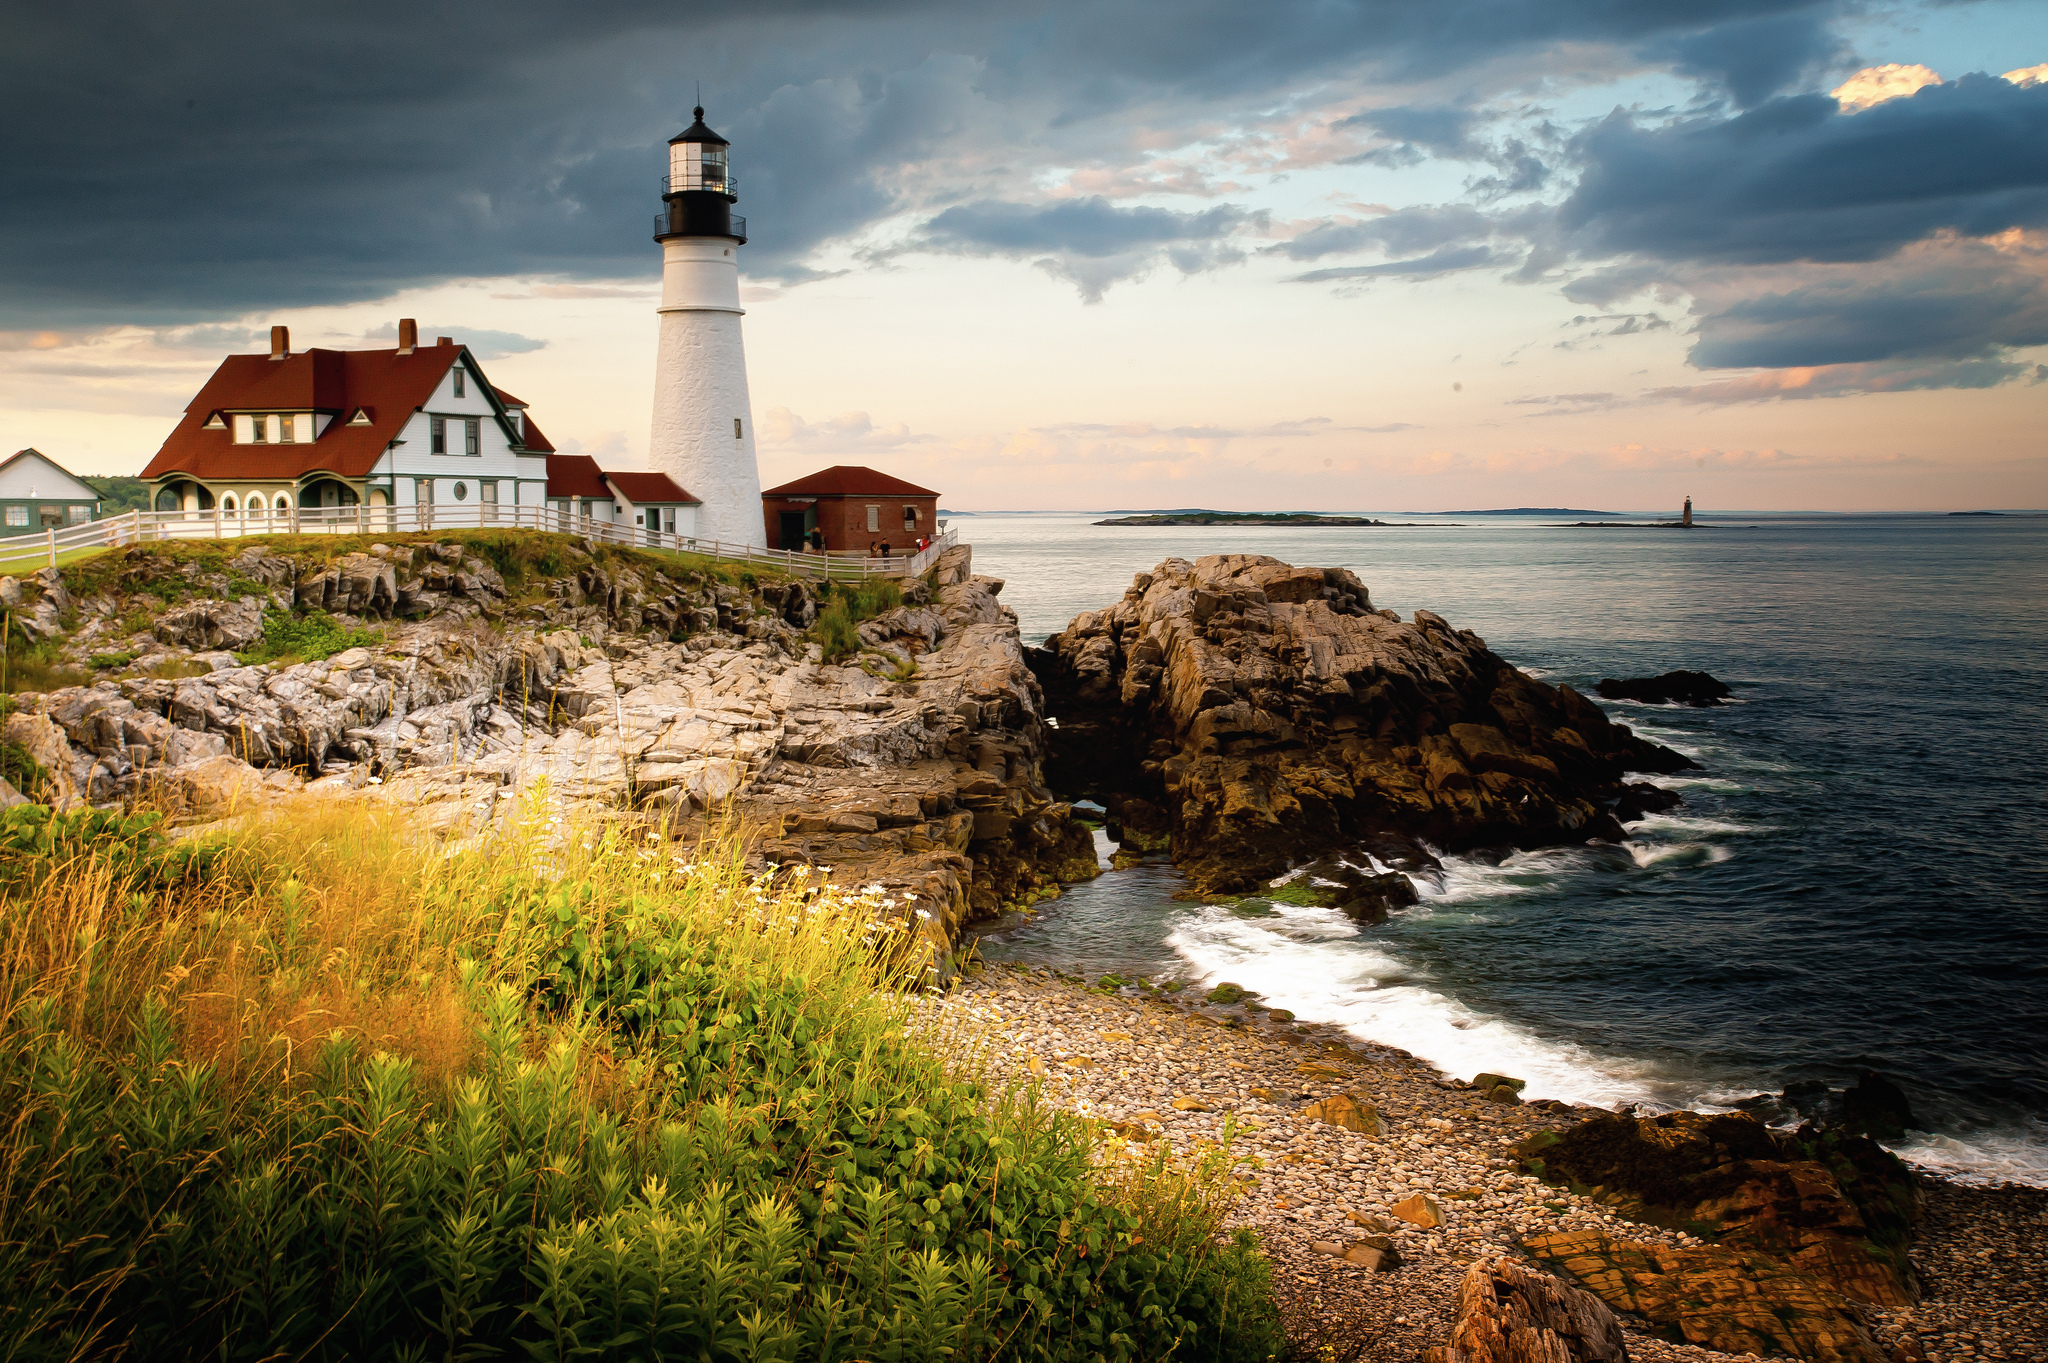 Wallpaper portland head light cape elizabeth maine lighthouse gulf 2048x1363